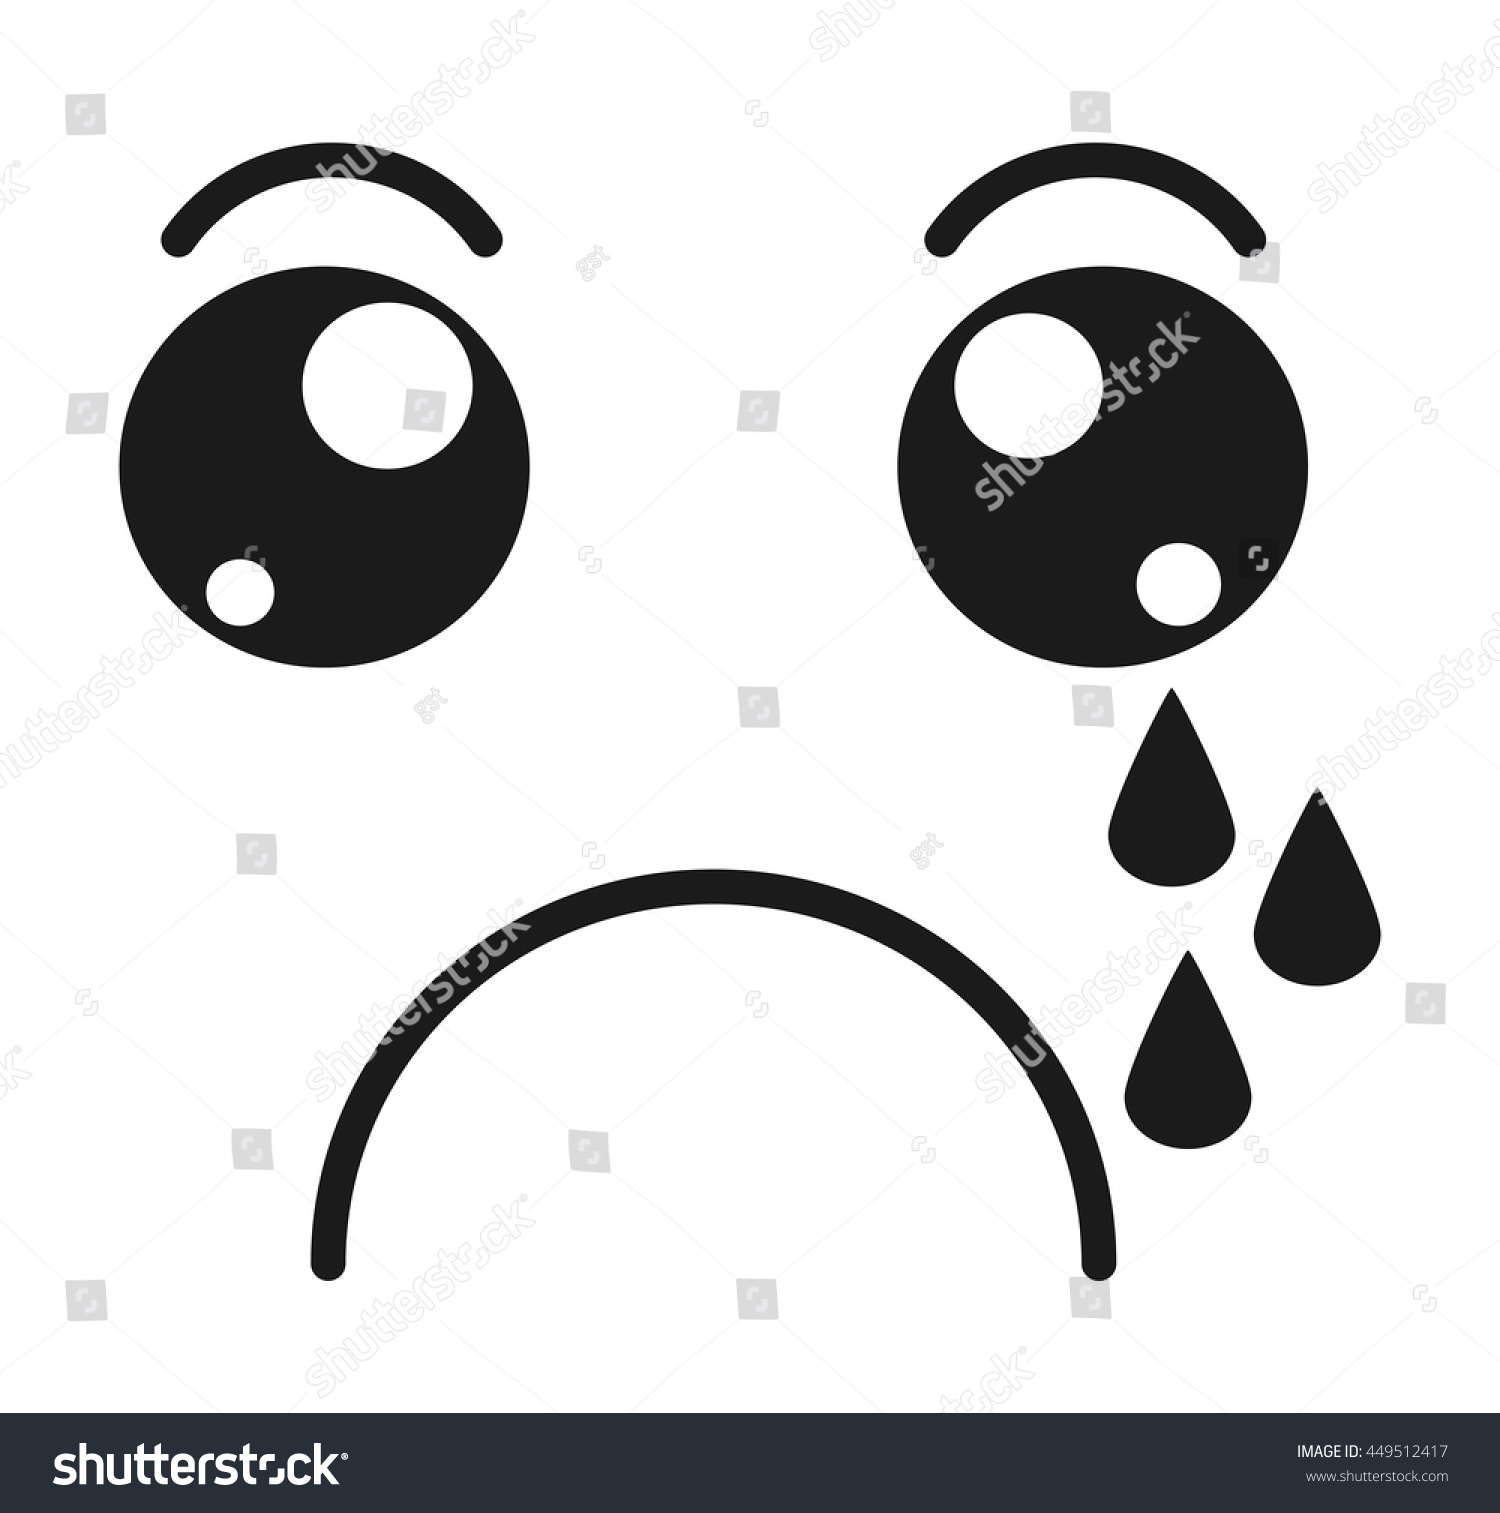 Crying Face Emoticon Isolated Icon Design Stock Vector Royalty Free